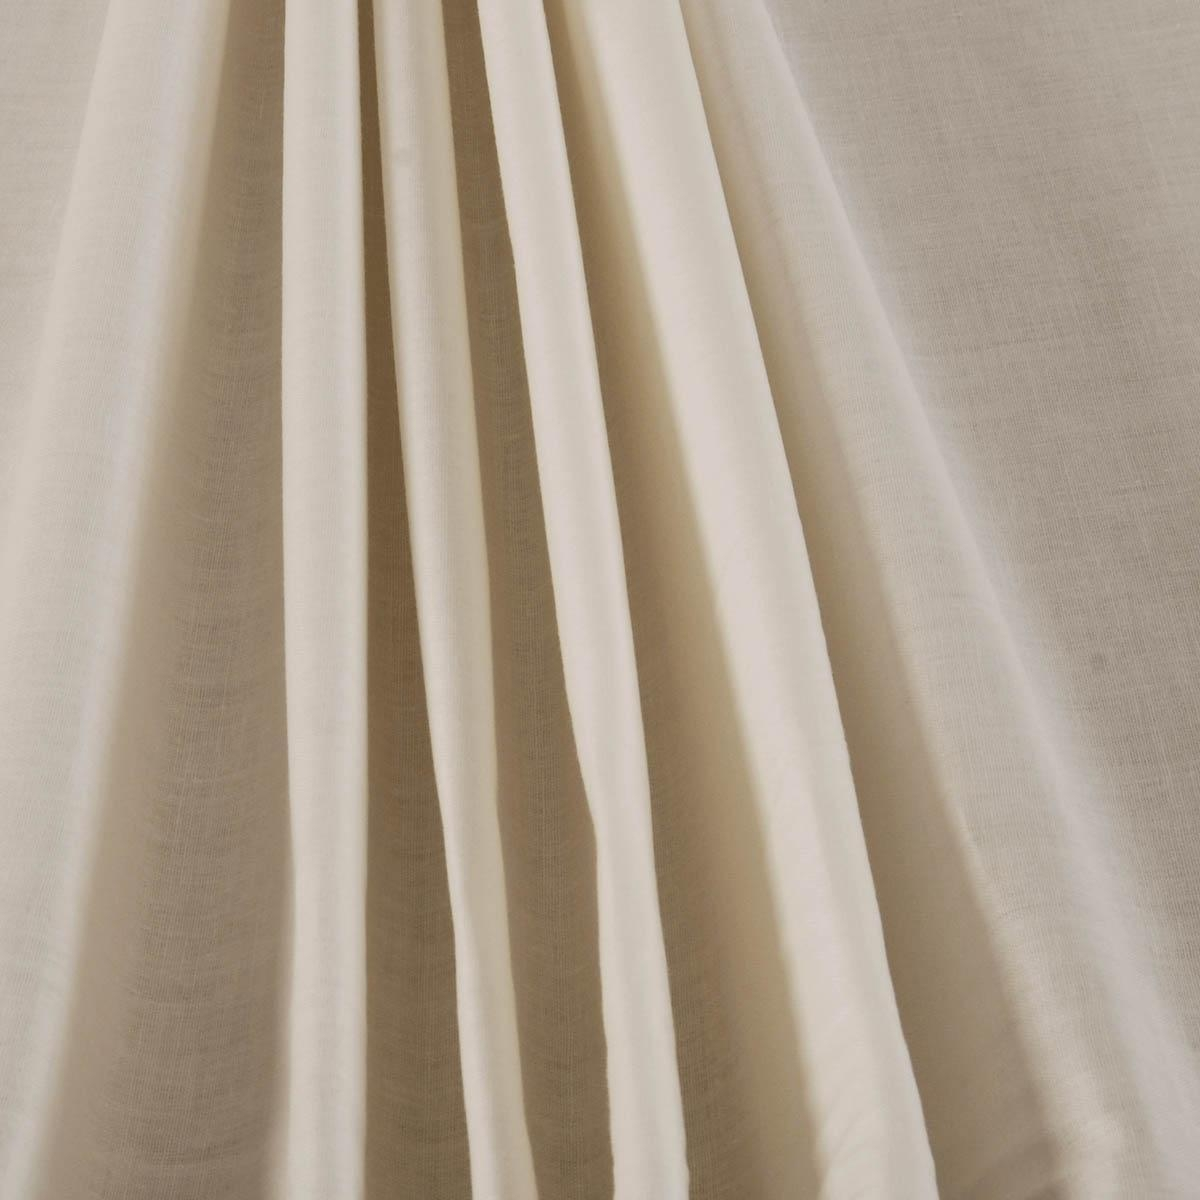 Lined Cotton Curtains Inside Lined Cotton Curtains (Image 8 of 15)